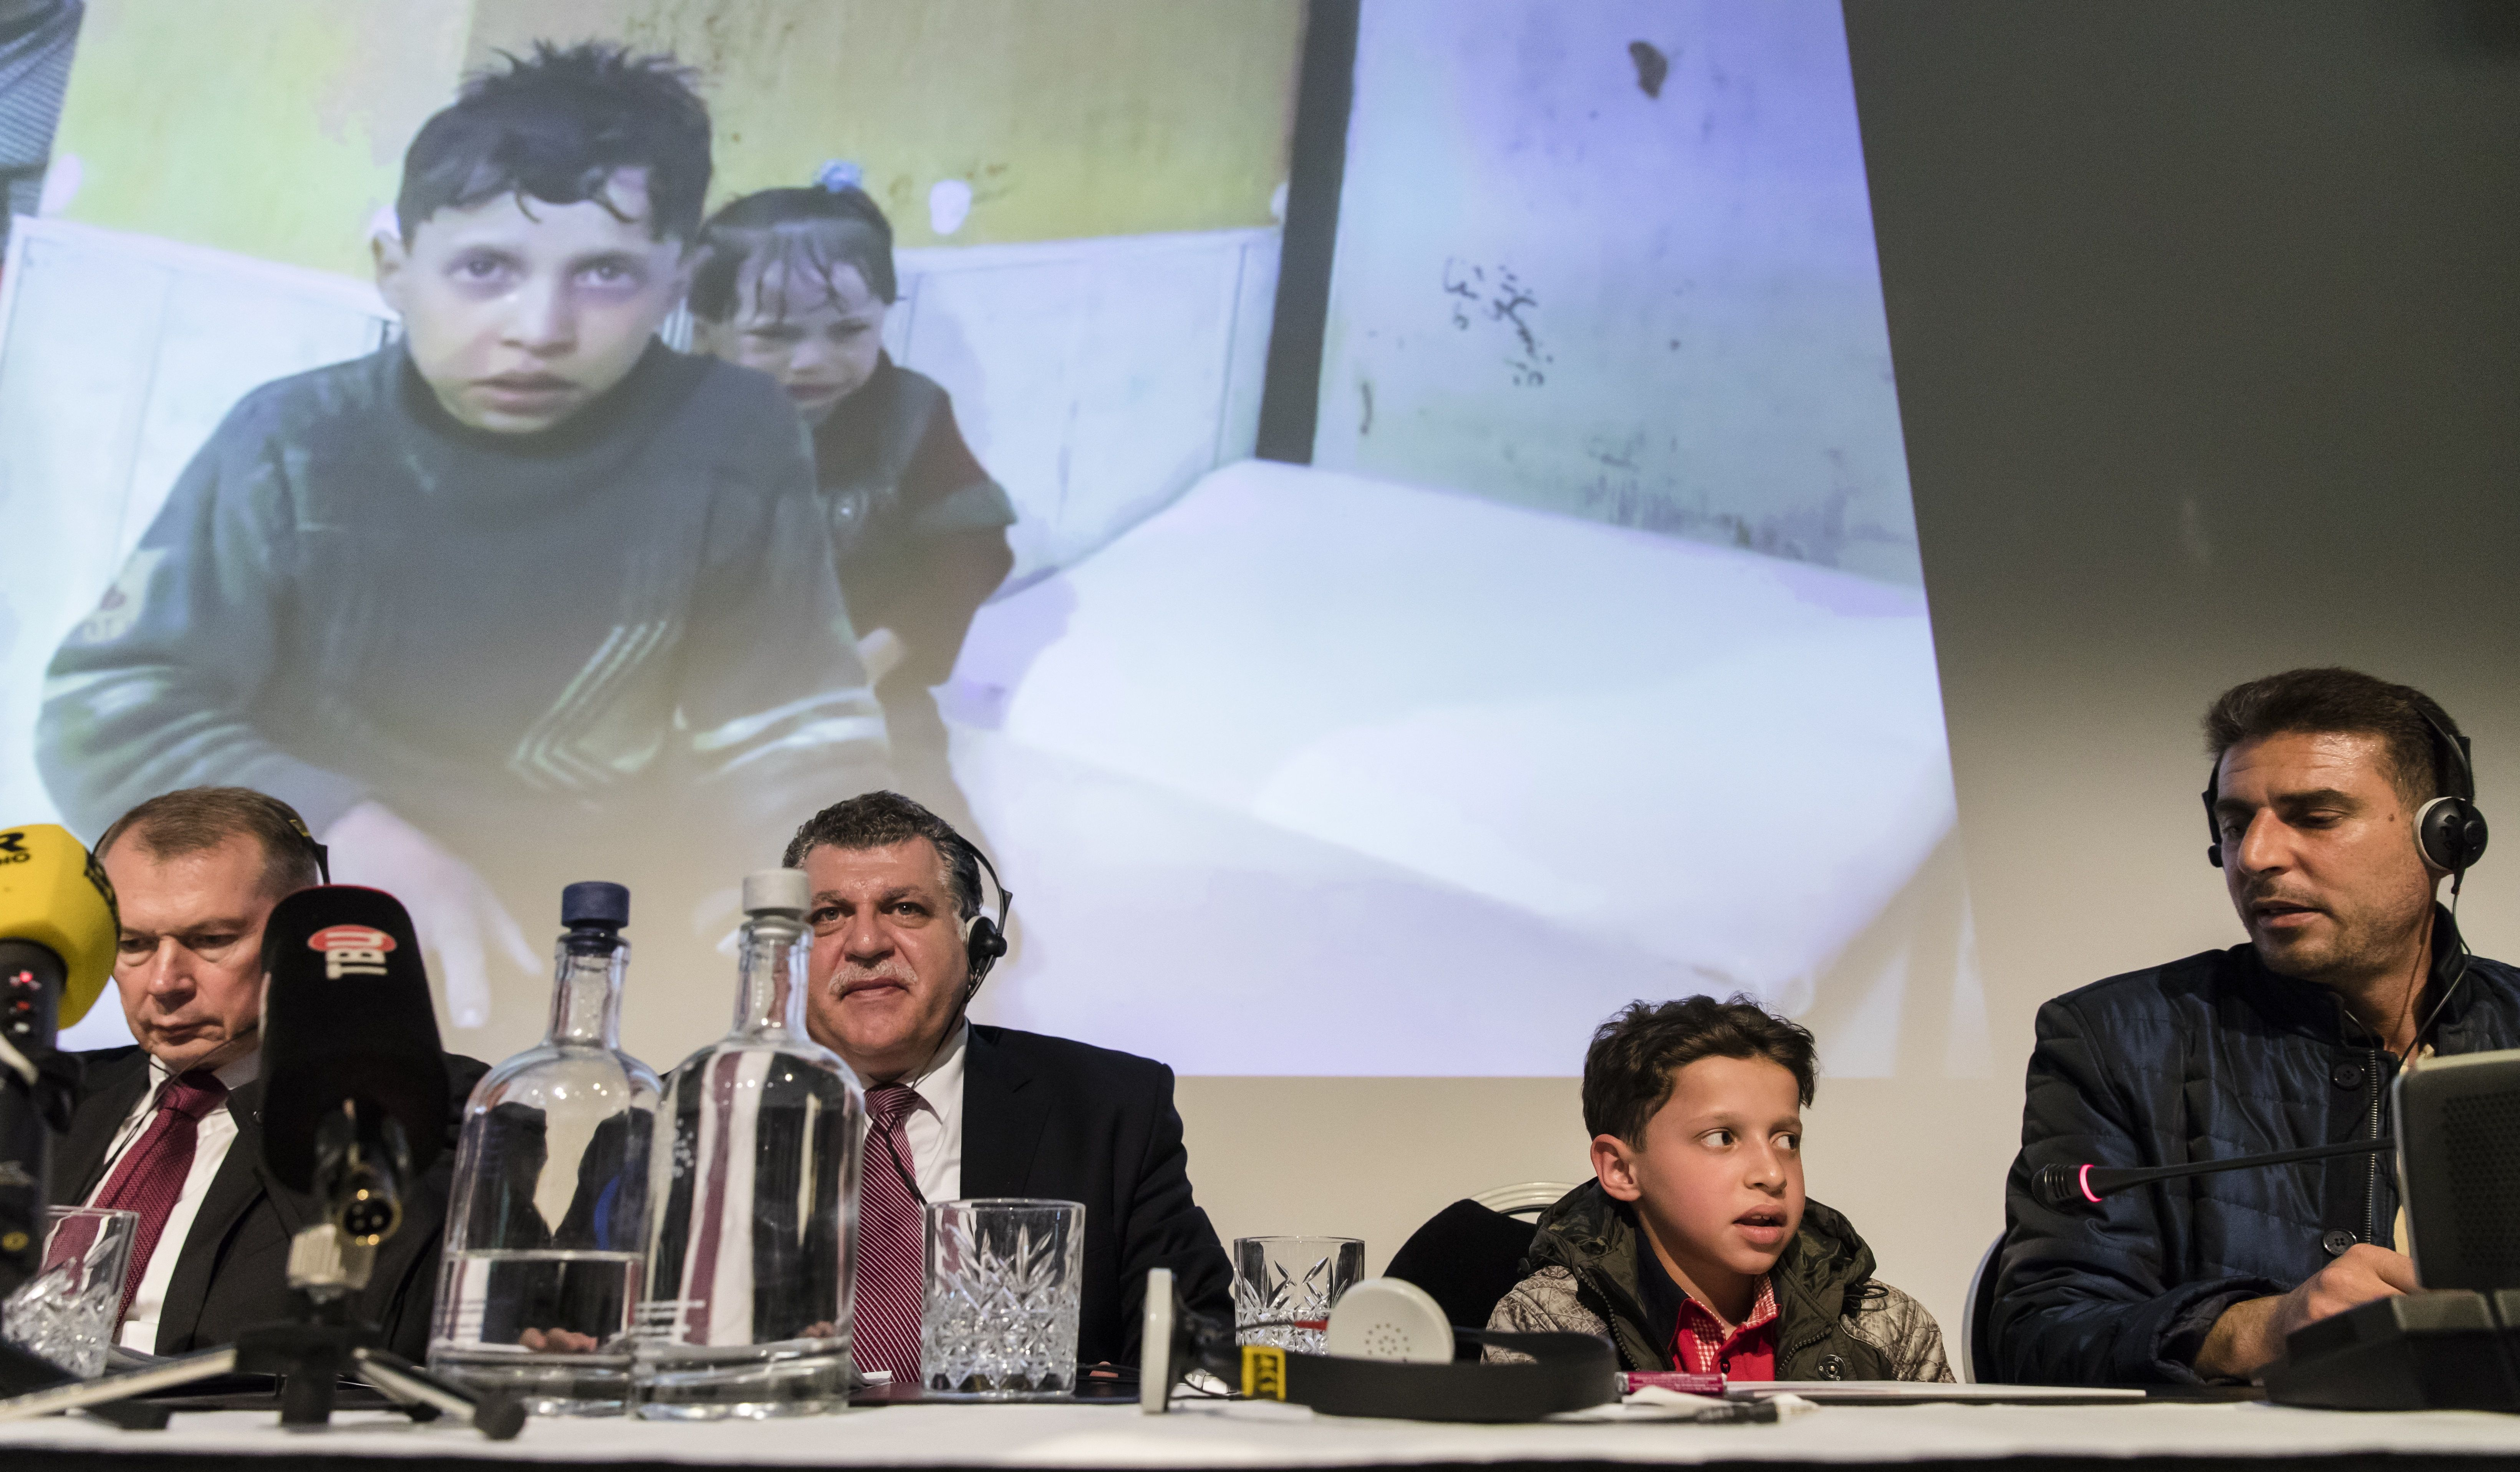 "(From L) Russian ambassador in The Netherlands Aleksander Shulgin (L), Syrian deputy representative at the Organisation for the Prohibition of Chemical Weapons (OPCW) Ghassan Obaid, a Syrian boy (appearing on the video above) and a Syrian man attend a press conference in The Hague on April 26, 2018 called by Russian embassy to present what it says are witnesses 'used to stage' Douma attack videos. - Russian diplomats said they are organising the briefing for OPCW member nations and would ""bring some Syrians to speak about the reported Douma incident"". The Russian embassy in the Netherlands said in a tweet that the briefing would involve ""witnesses from Syria who were at the staged videos of #WhiteHelmets"" -- a humanitarian organisation made up of some 3,000 volunteers working in rebel-held areas. On April 7, the Syrian American Medical Society (SAMS) and the White Helmets jointly said dozens of people died in a ""poisonous chlorine gas attack"" in Douma. The OPCW said it had urged the Russian delegation to allow its experts to interview the witnesses first, and to hold the briefing ""once the FFM has completed its work"". ""Nevertheless, the Russian delegation stated that it would go ahead with the briefing and that its intention was not to interfere with the FFMs work,"" the OPCW statement added. (Photo by Bart MAAT / ANP / AFP) / Netherlands OUT        (Photo credit should read BART MAAT/AFP/Getty Images)"